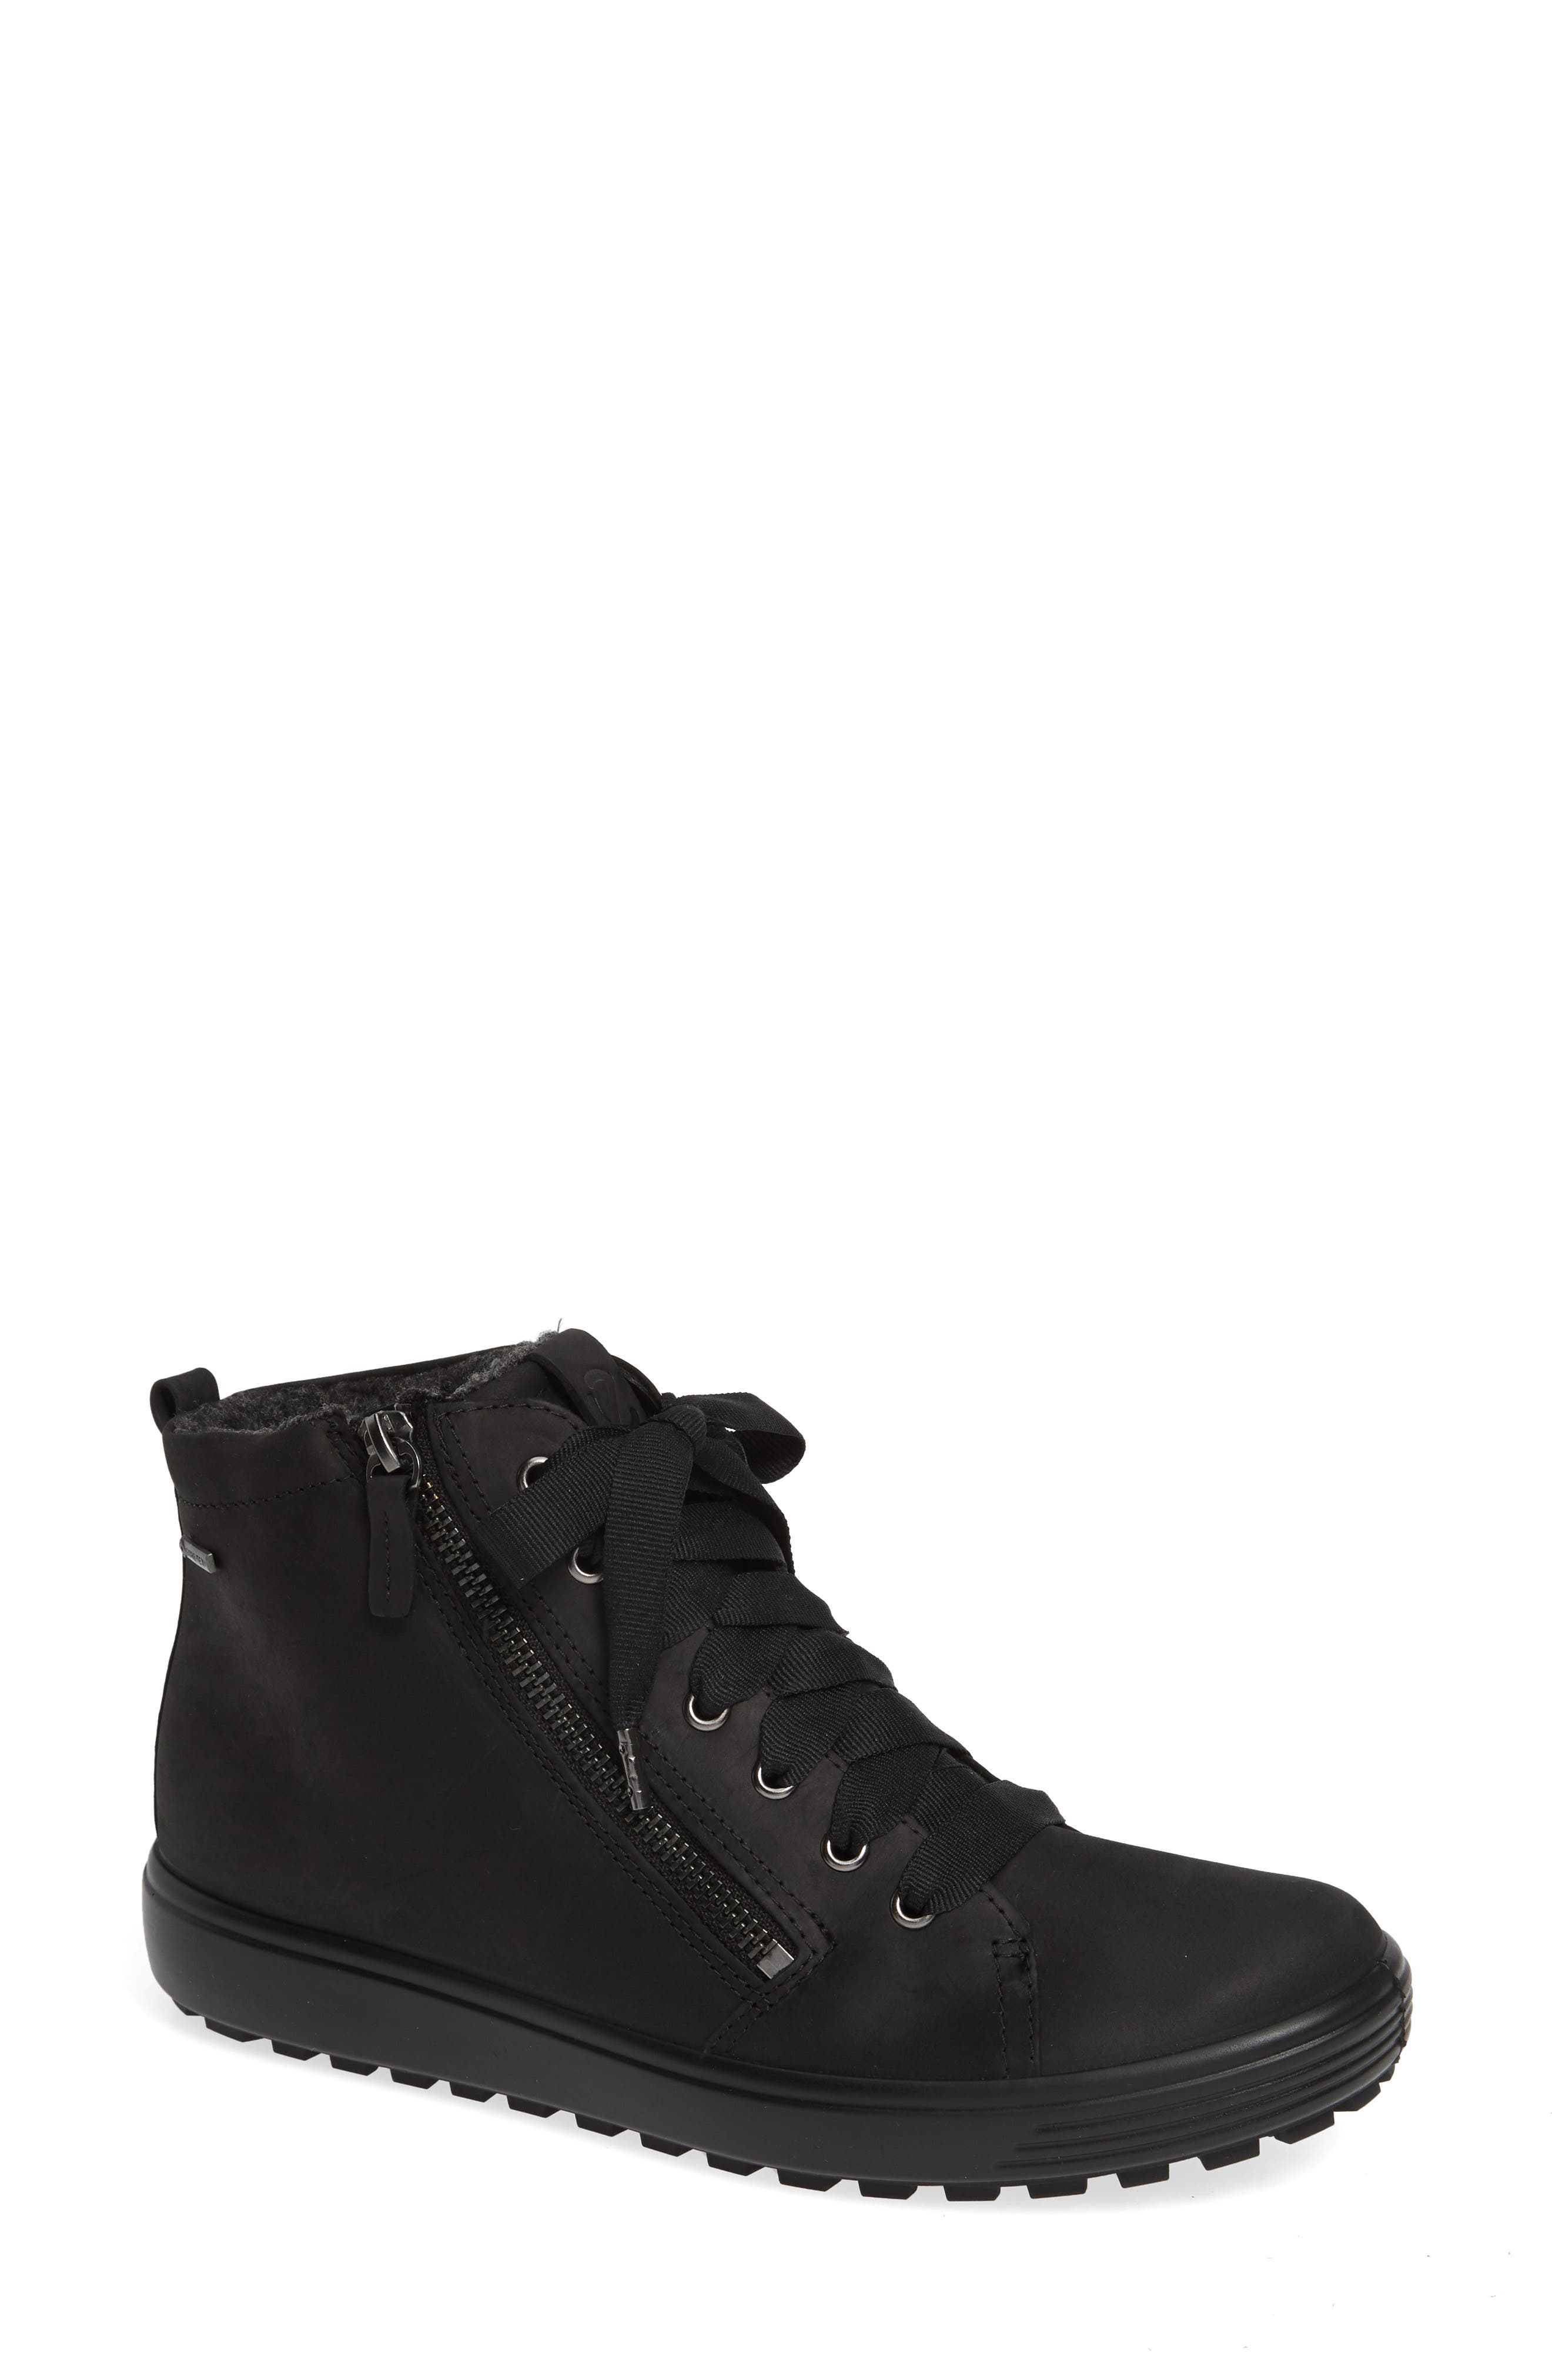 ECCO Soft 7 Tred Gore-Tex<sup>®</sup> Waterproof Bootie, Main, color, BLACK OIL NUBUCK LEATHER